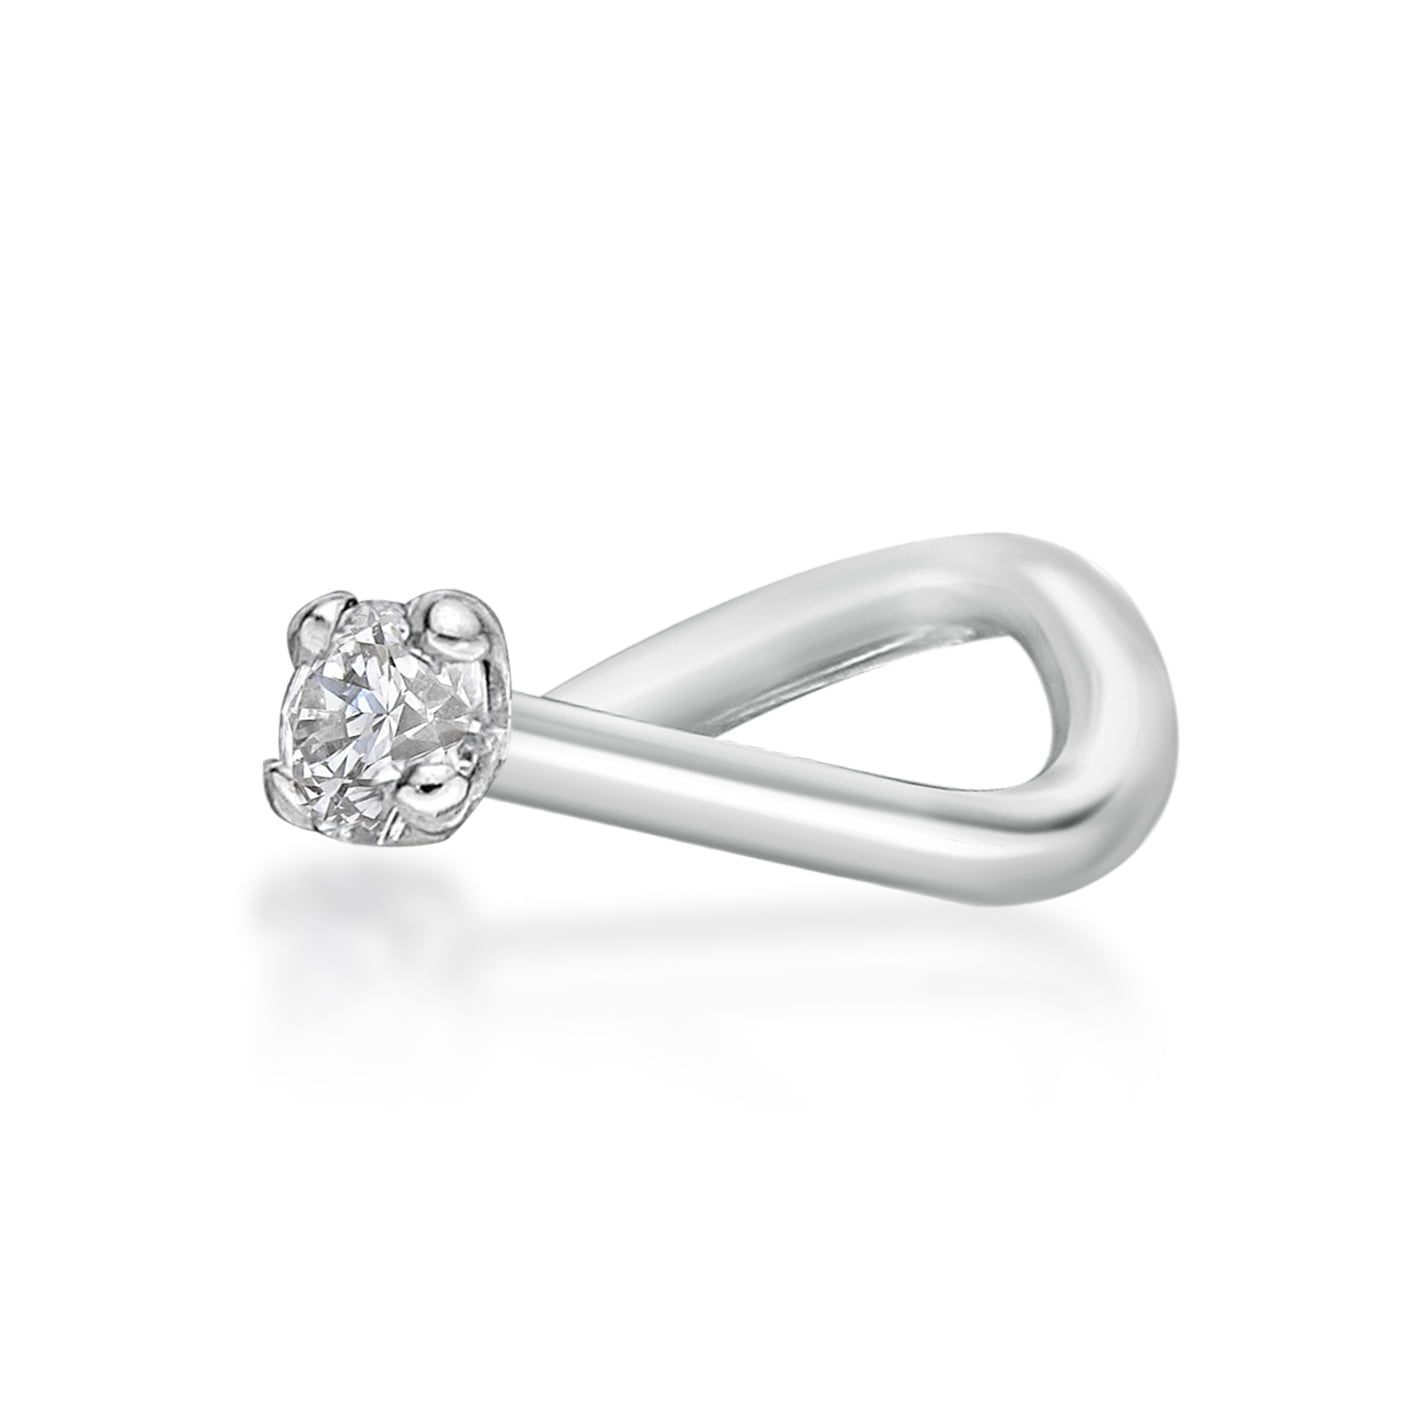 43213-nose-ring-the-piercer-white-gold-dia-round-1-7--43213-1